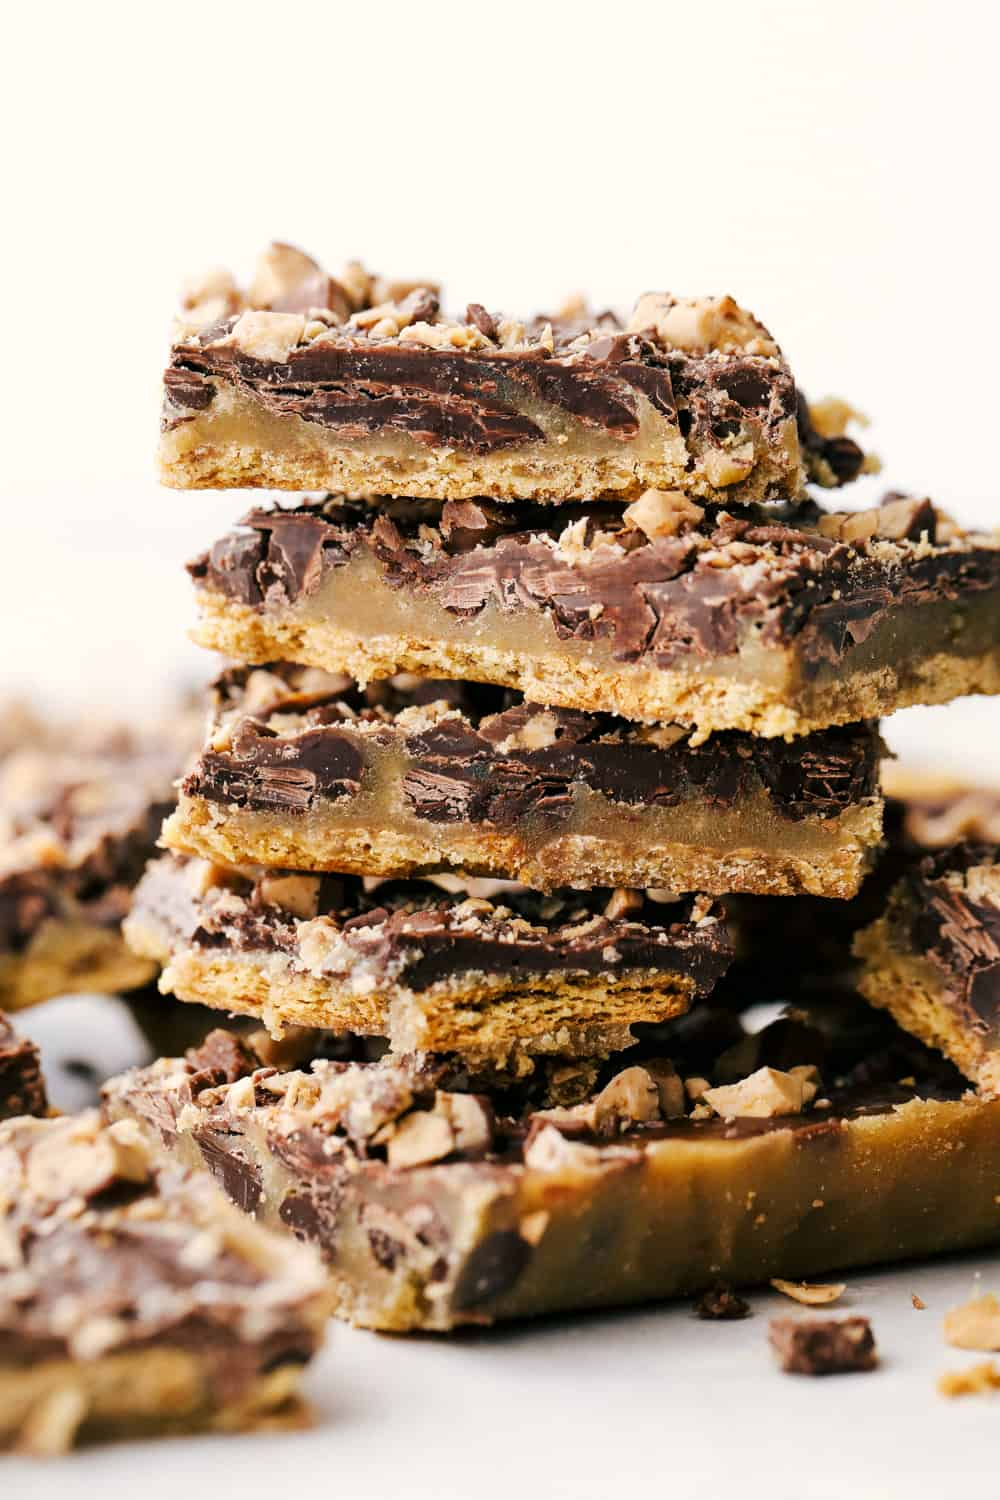 Crunchy, sweet and chewy Graham Cracker Toffee.